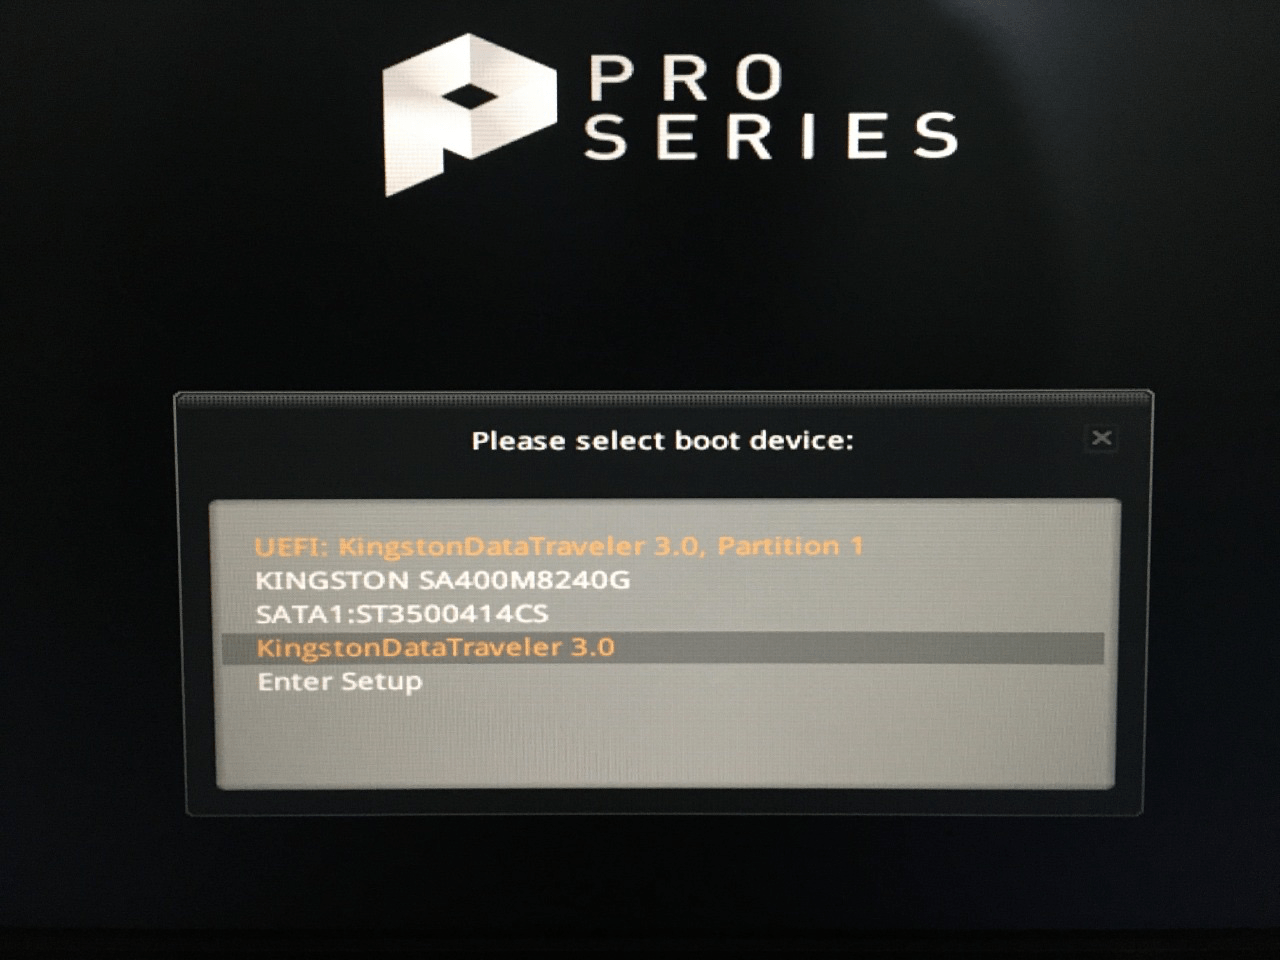 start pressing the boot menu key, and it will reveal the number of bootable drives